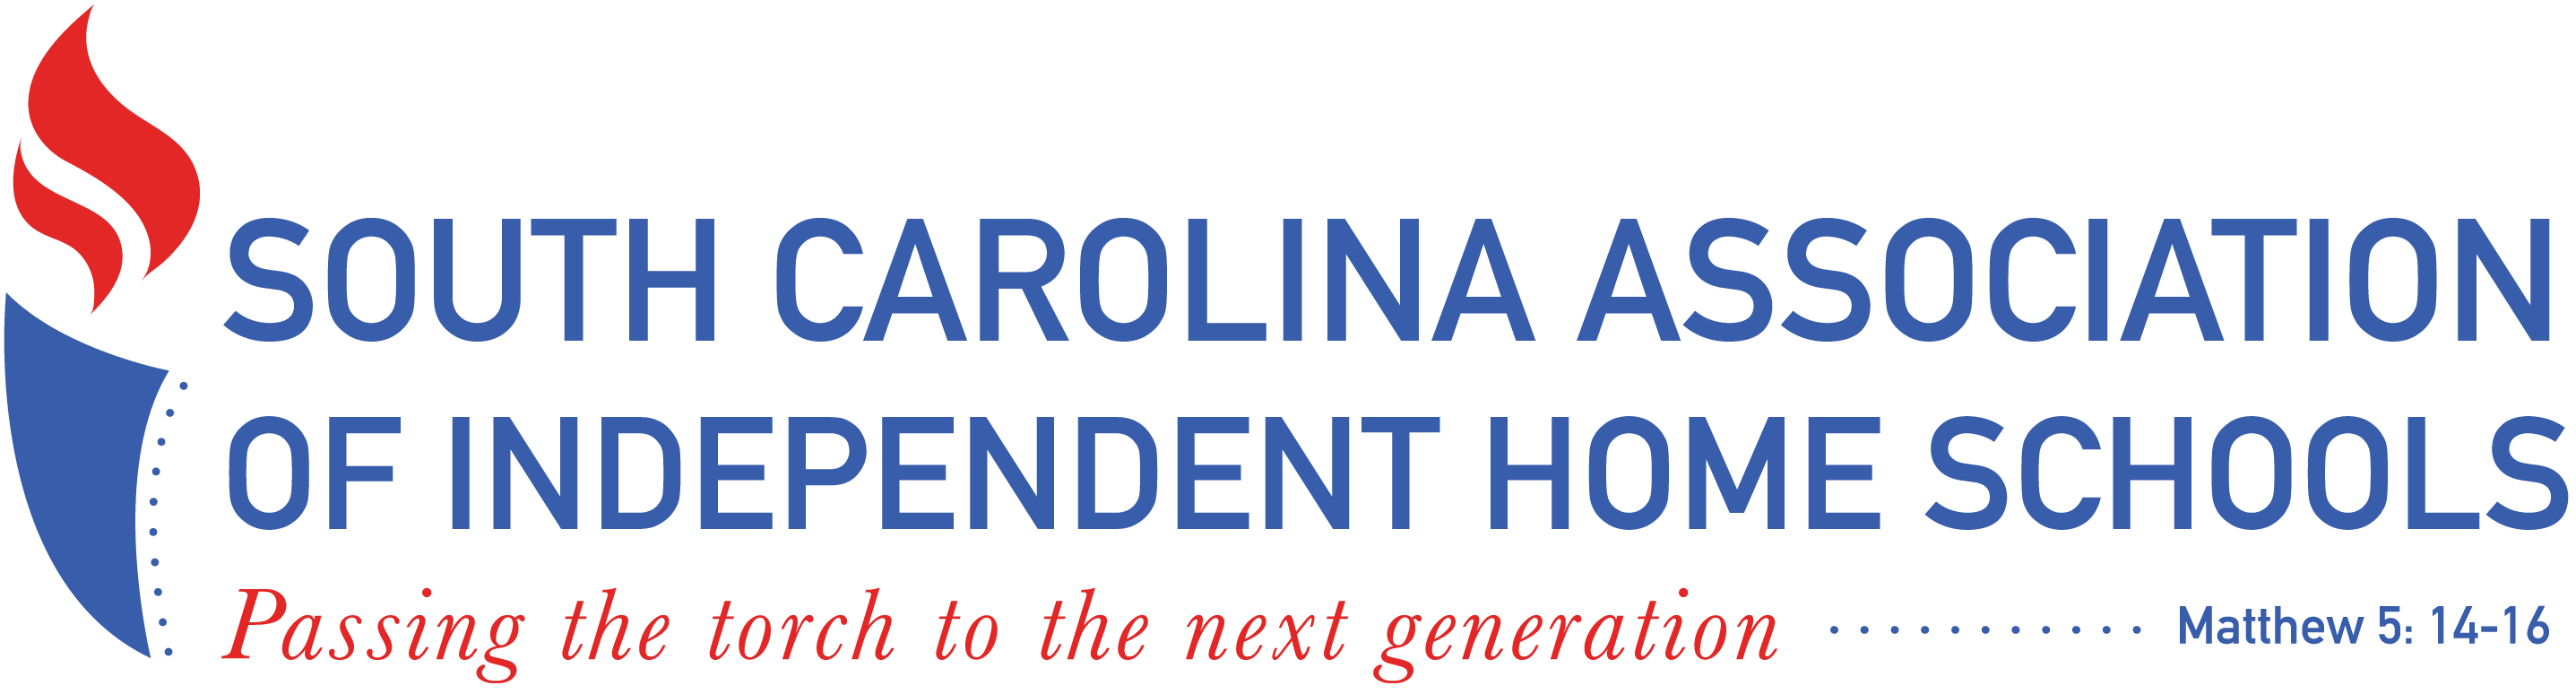 SCAIHS South Carolina Association of Independent Home Schools -